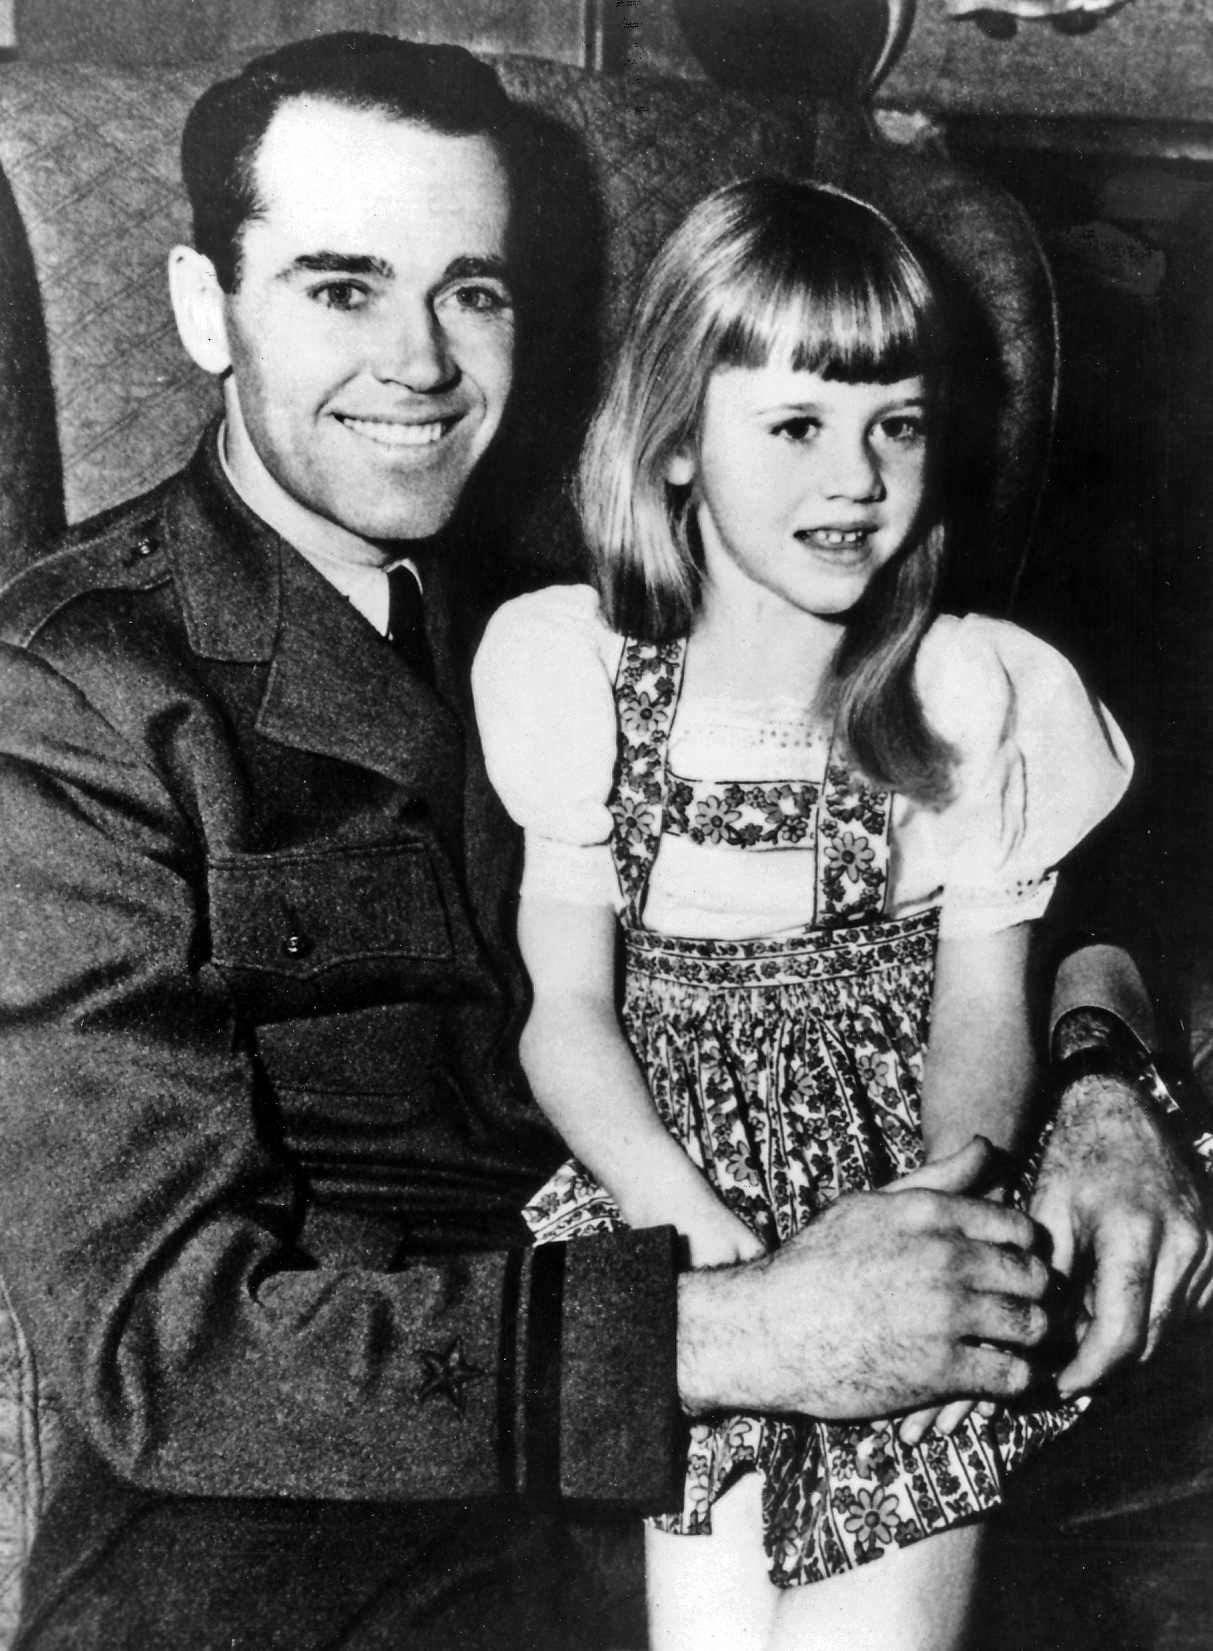 Jane and Father Henry Fonda